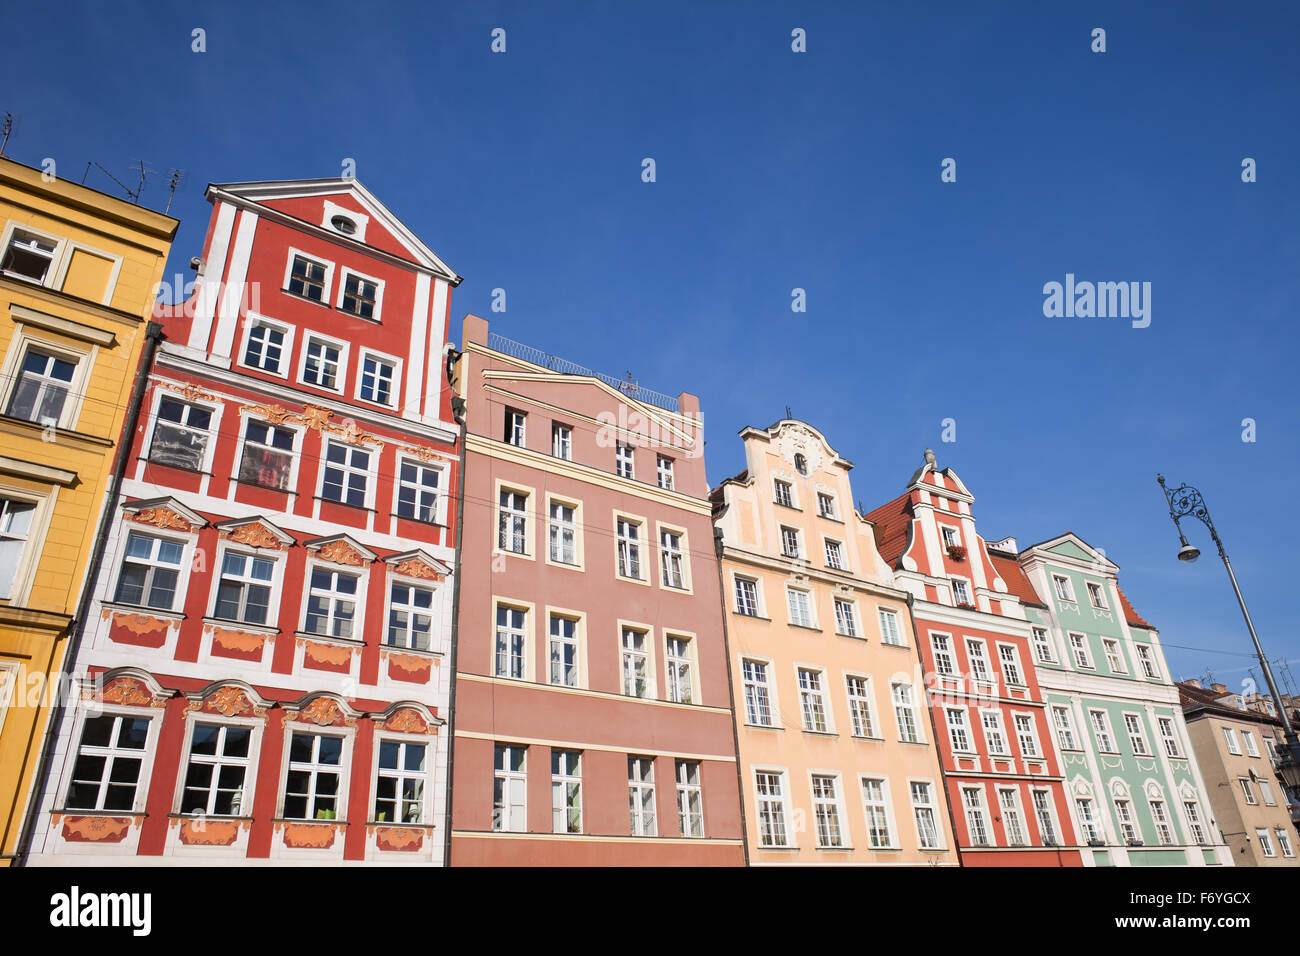 Row of historical tenement houses in the Old Town of Wroclaw in Poland. - Stock Image